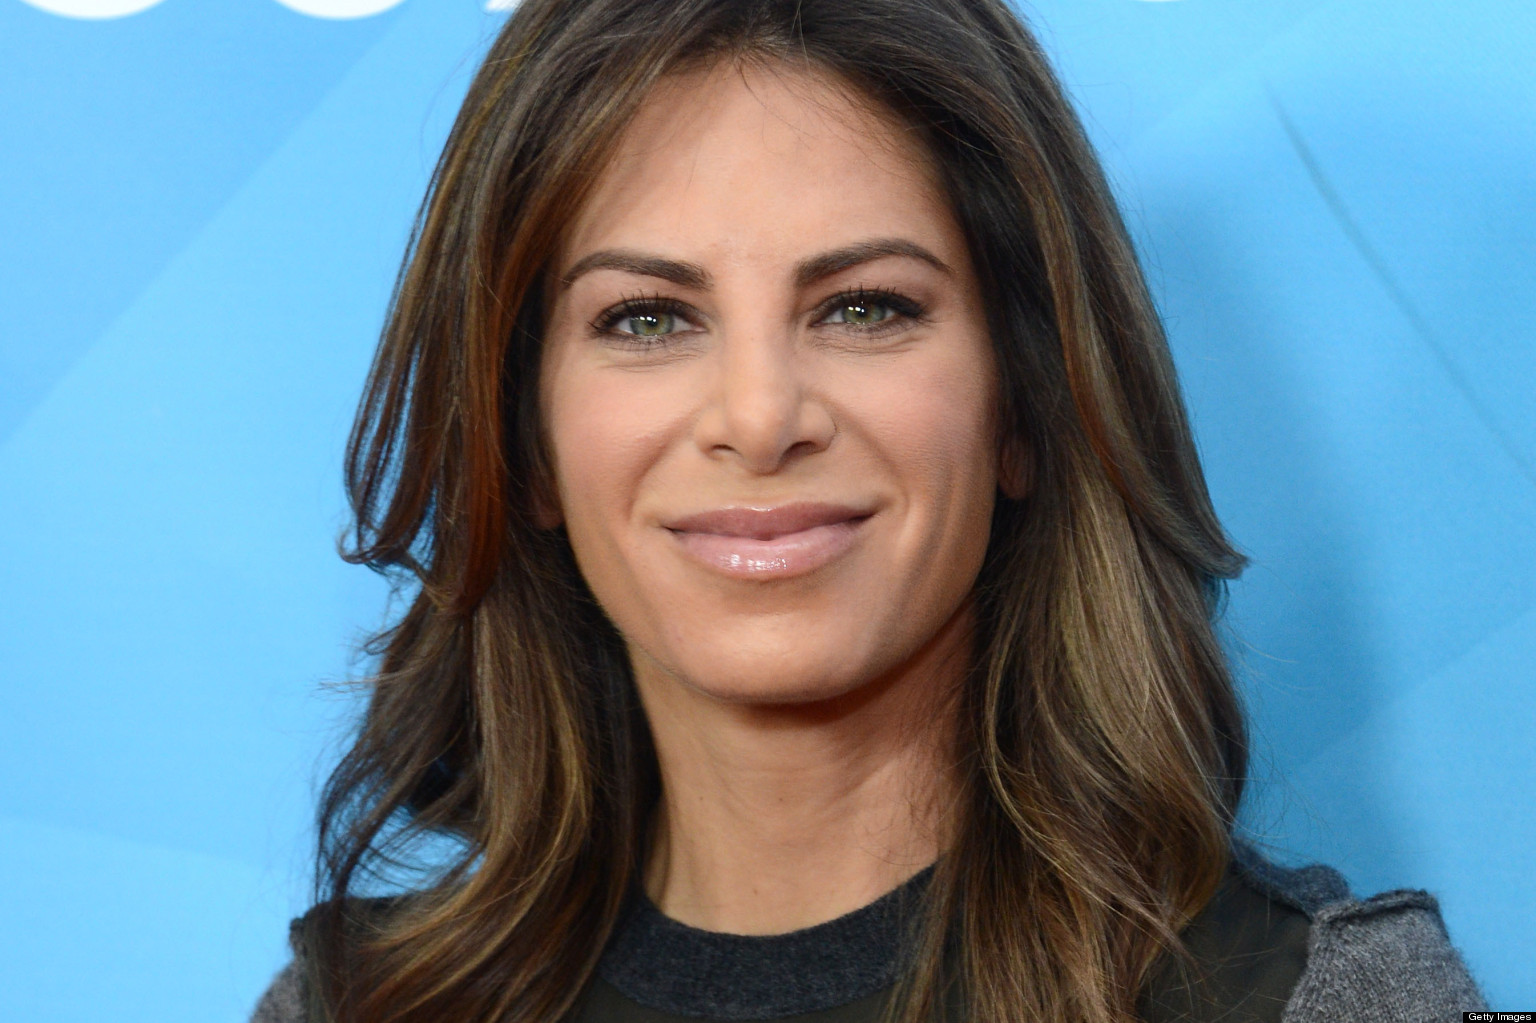 jillian michaels beginner shred отзывыjillian michaels 30 day shred, jillian michaels тренировки, jillian michaels отзывы, jillian michaels yoga, jillian michaels issues перевод, jillian michaels issues скачать, jillian michaels нет проблемным зонам, jillian michaels one week shred, jillian michaels level 3, jillian michaels программы, jillian michaels beginner shred на русском, jillian michaels killer arms and back, jillian michaels body revolution скачать, jillian michaels скачать, jillian-michaels.ru, jillian michaels level 2, jillian michaels — bodyshred, jillian michaels bodyshred скачать, jillian michaels workout, jillian michaels beginner shred отзывы